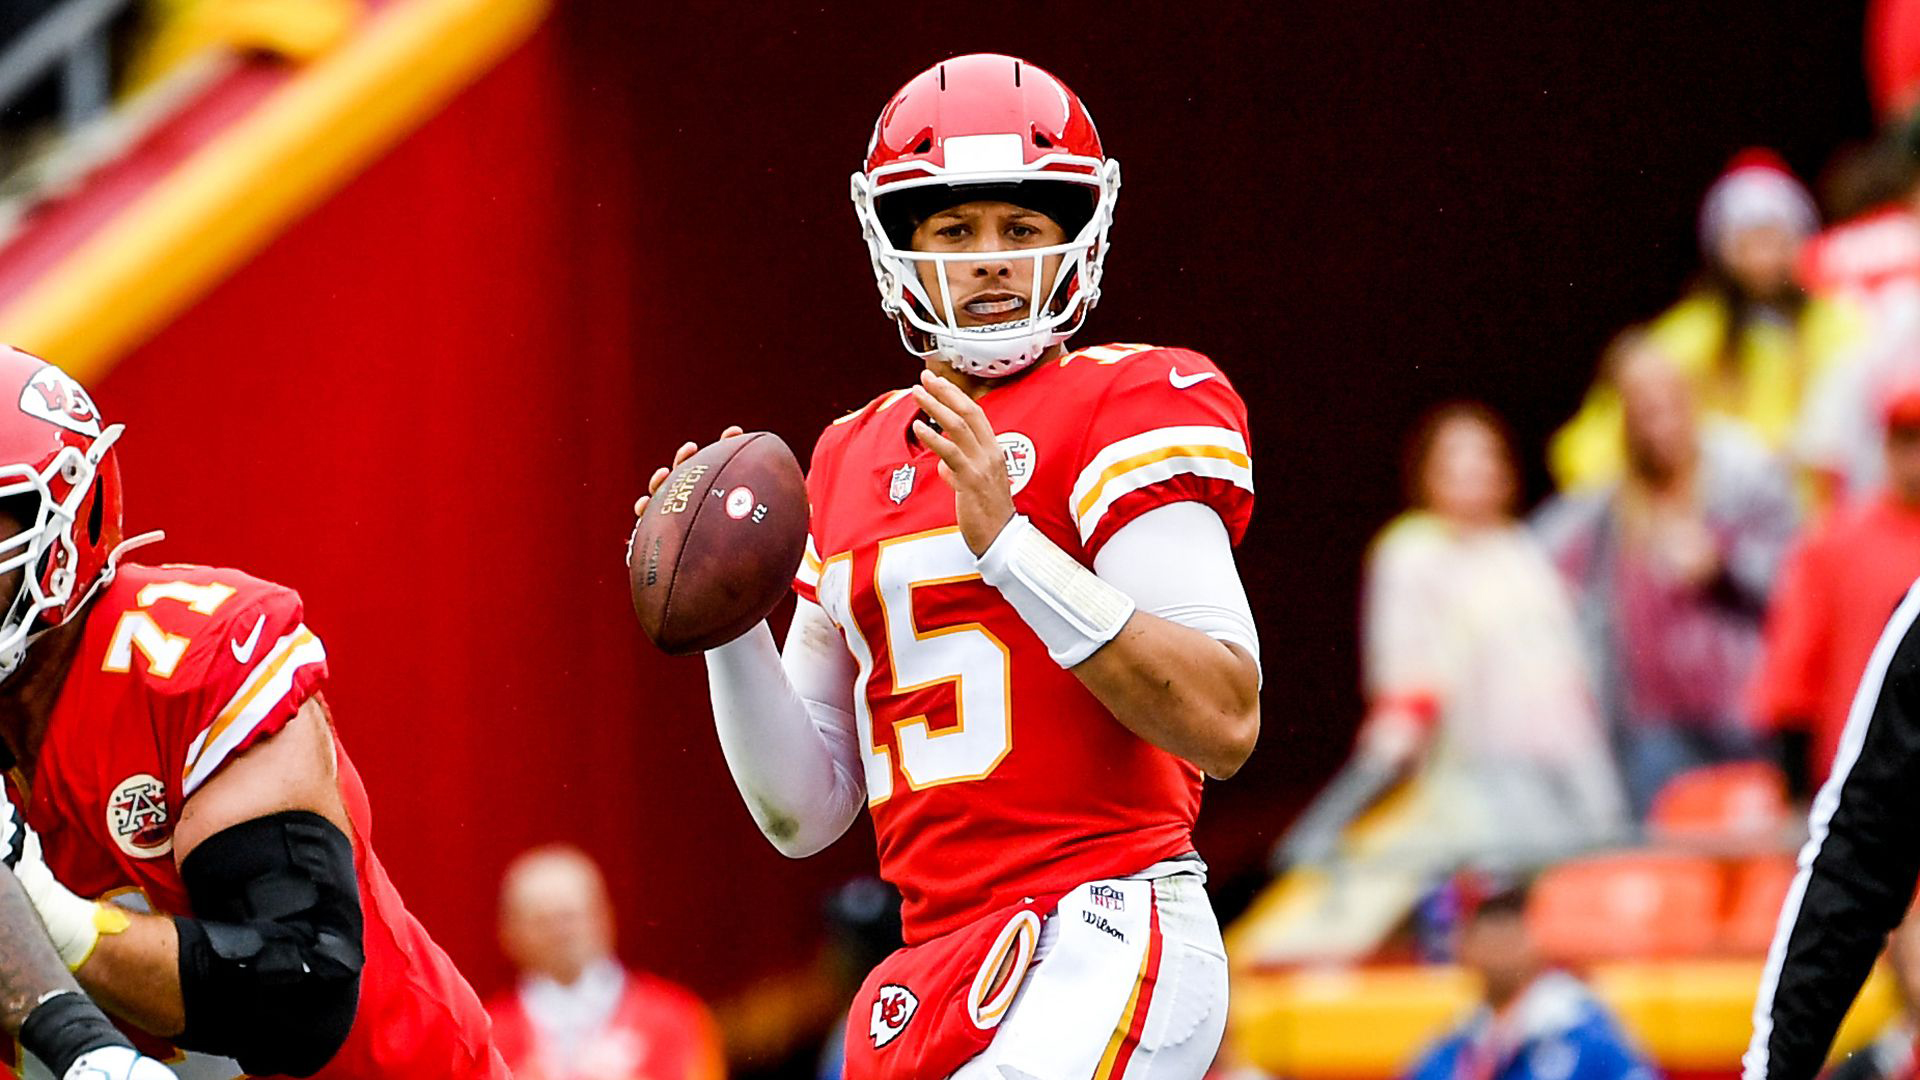 Download Patrick Mahomes In Red Sports Dress Hd Sports Hd